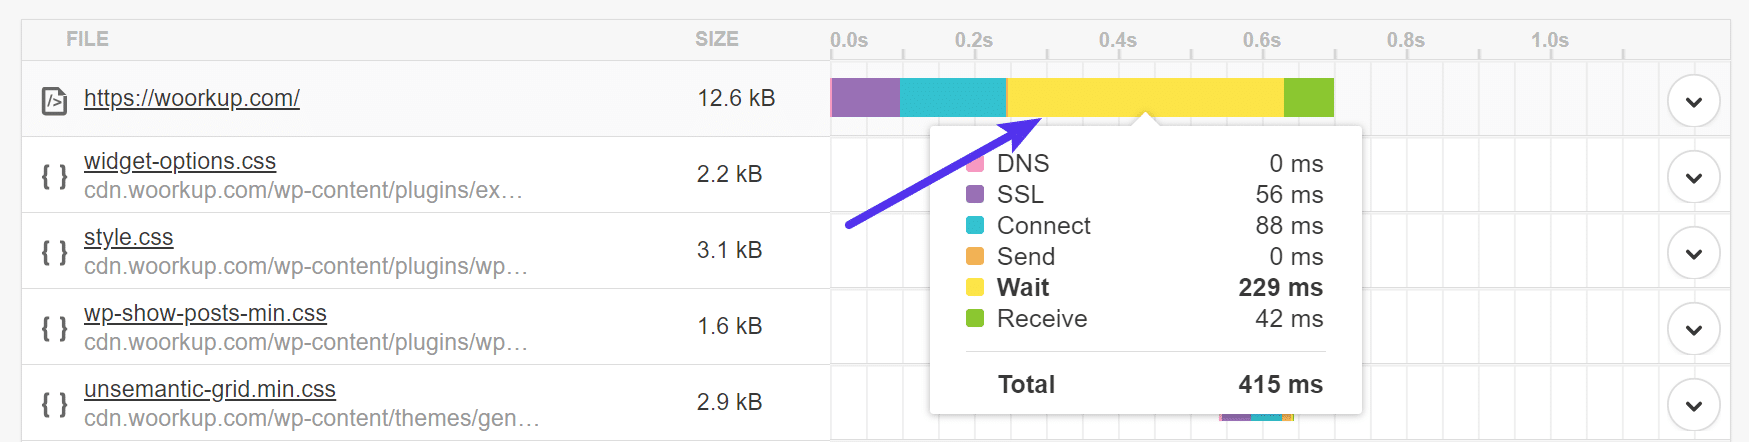 High TTFB with no caching